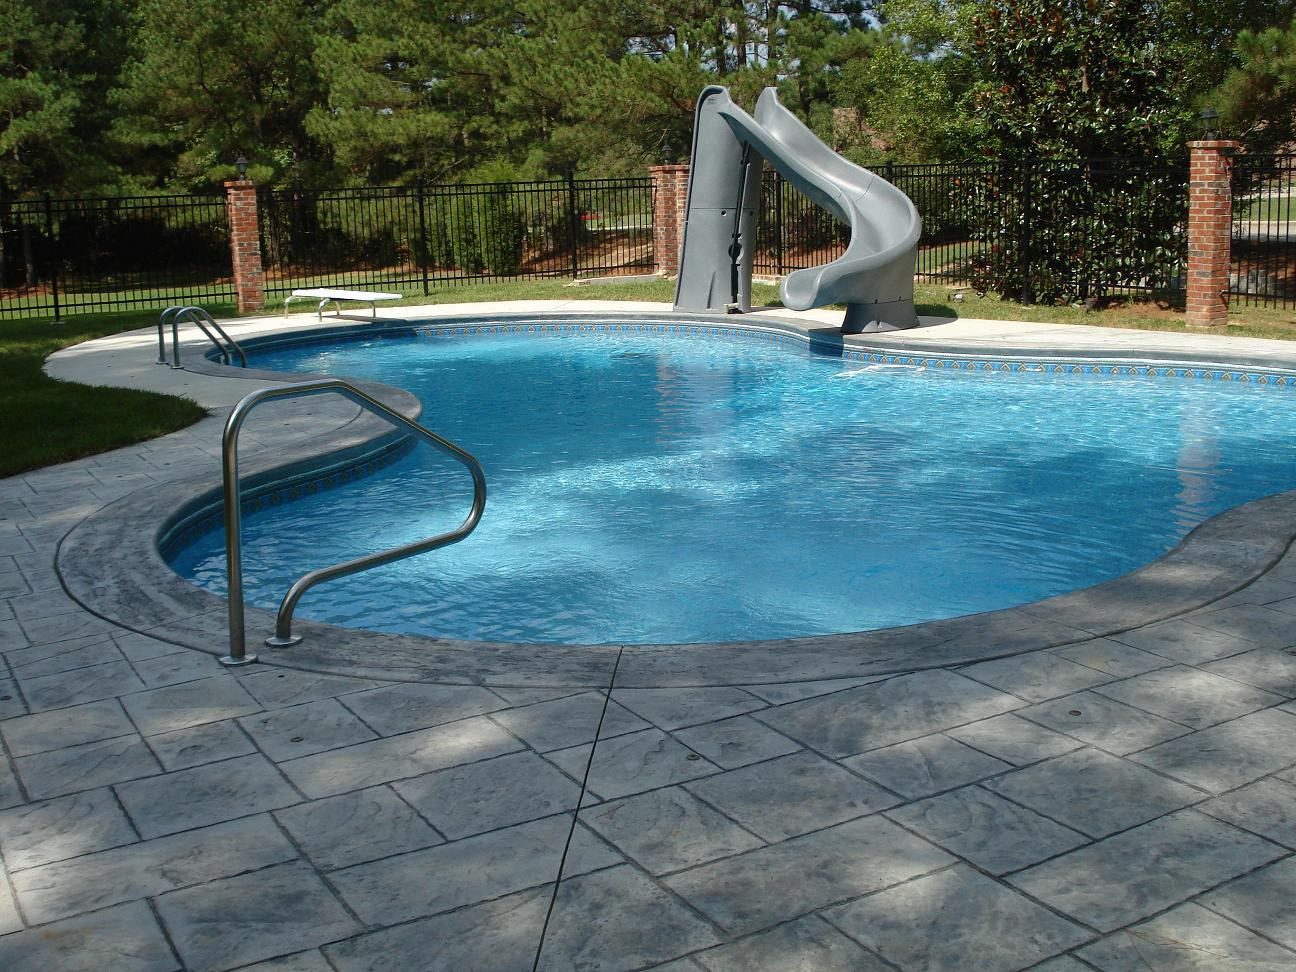 Fun of home pool slides backyard design ideas for Home designs with pool